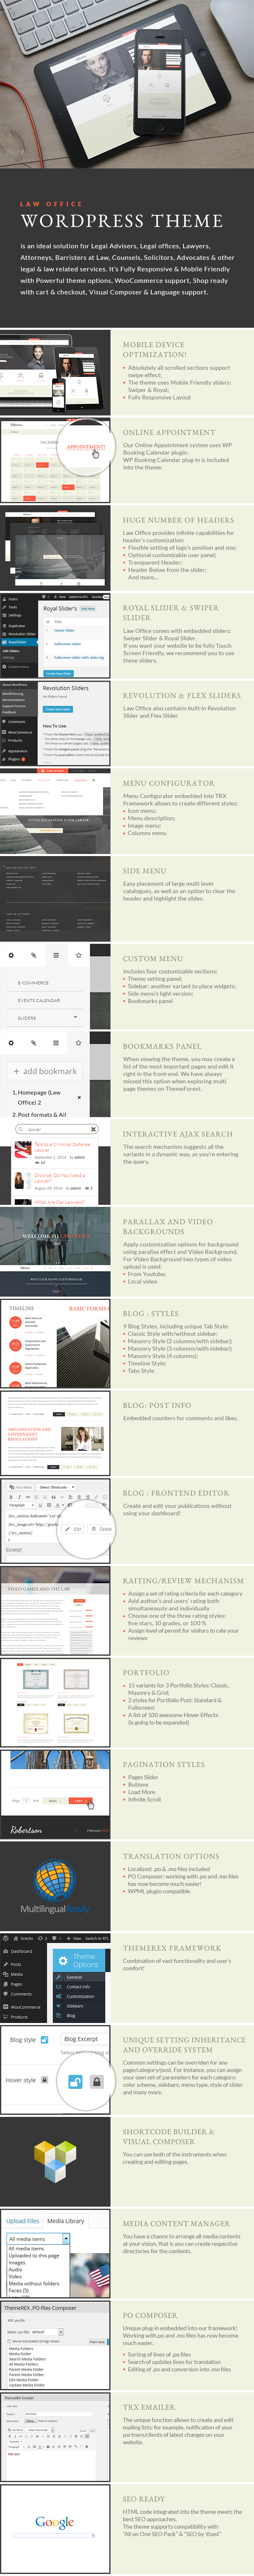 Law Office - Attorney & Legal Adviser WordPress Theme features